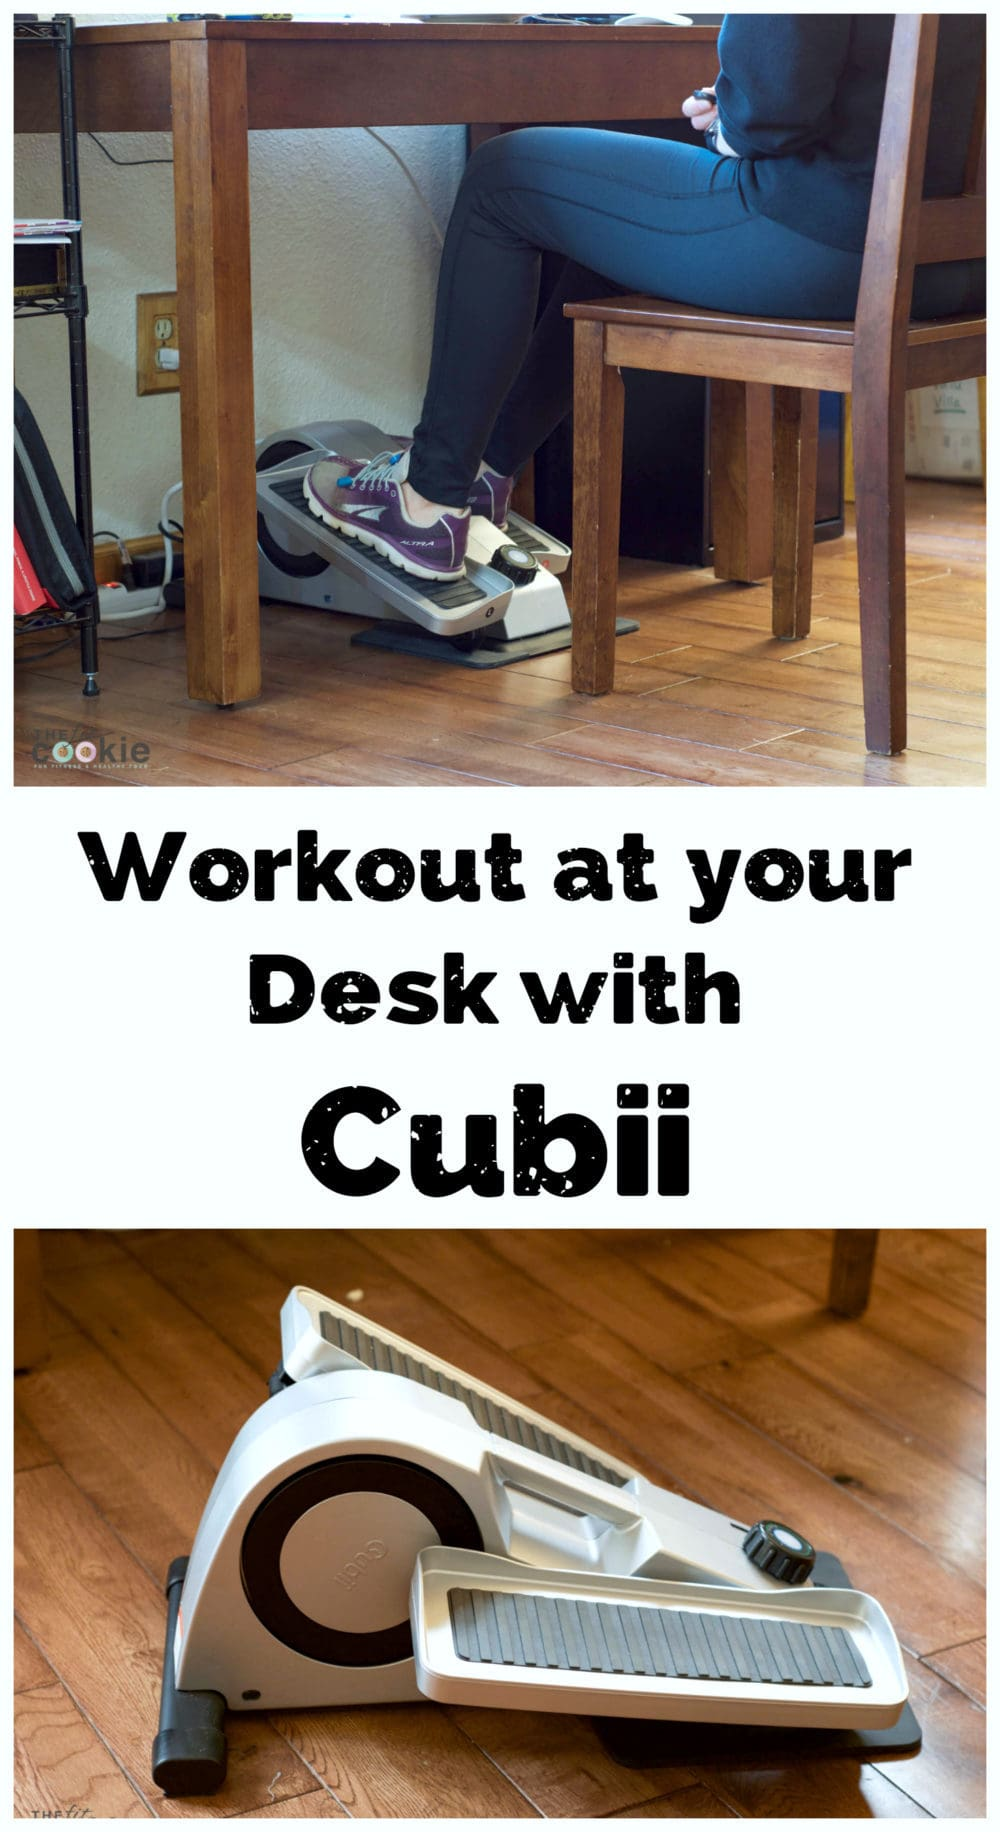 Workout at Your Desk with Cubii (review and discount!) - #ad @MyCubii #fitness #discount